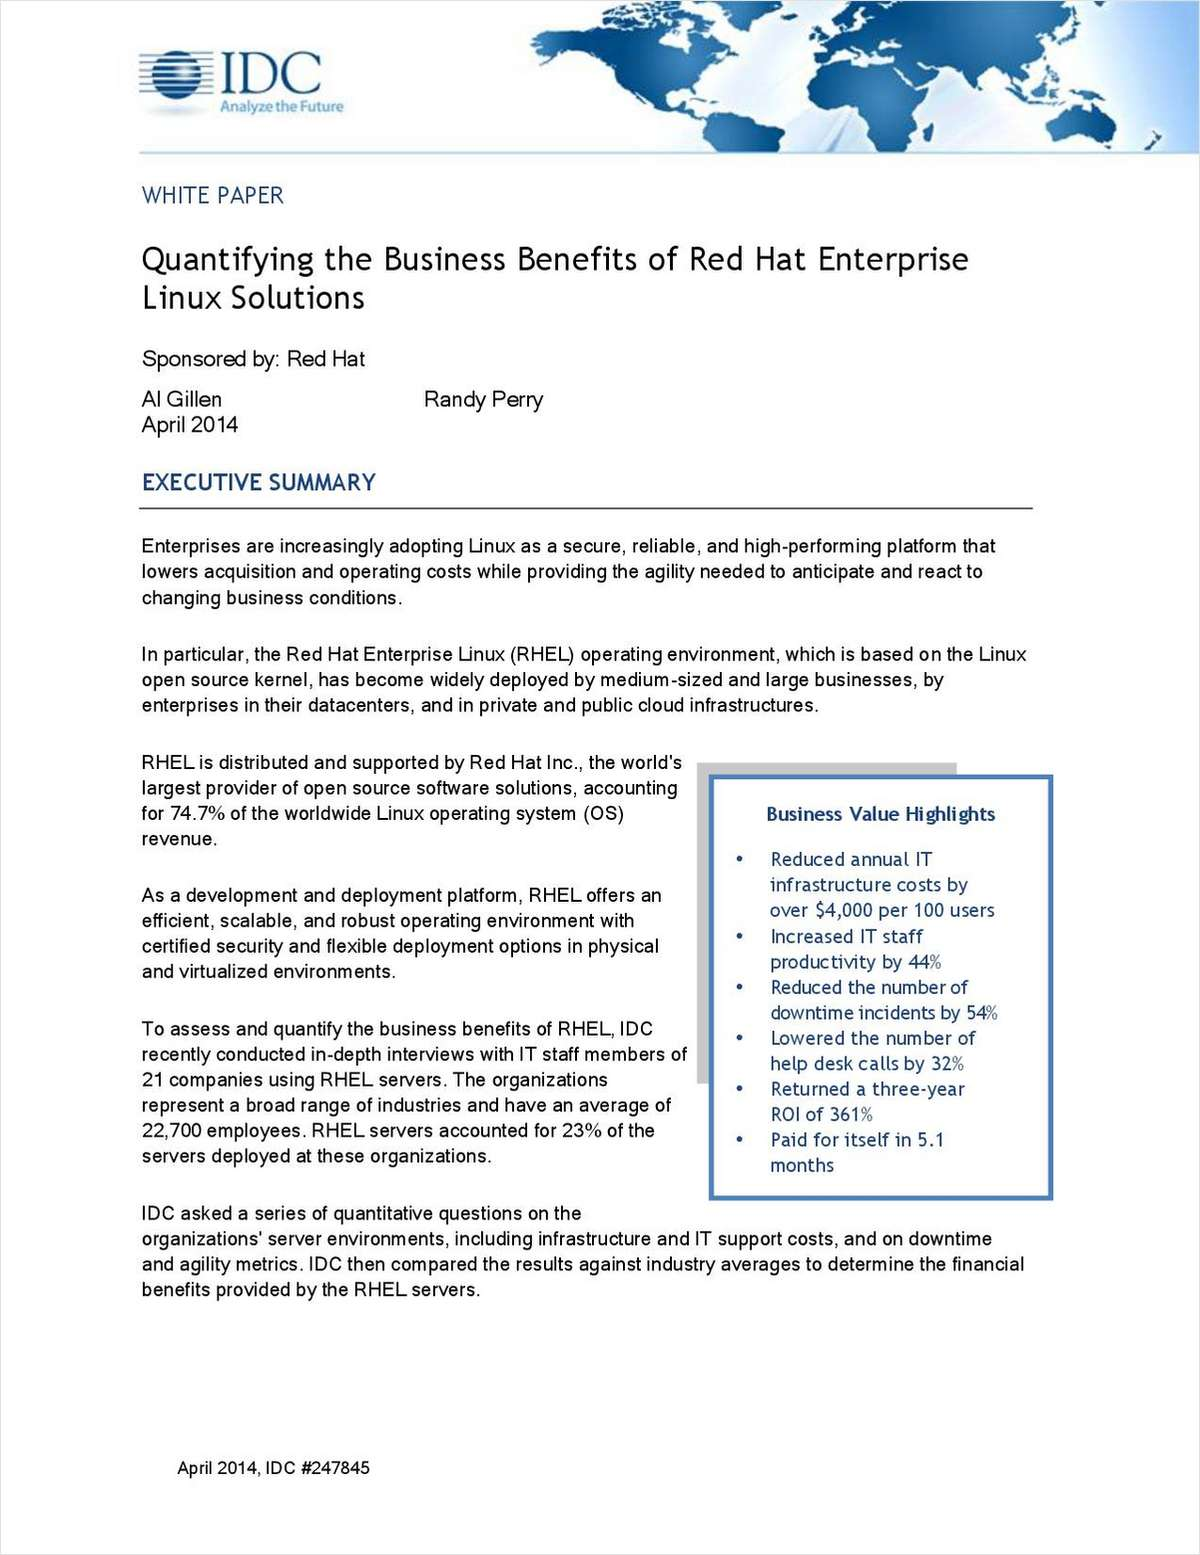 Quantifying the Business Benefits of Red Hat Enterprise Linux Solutions